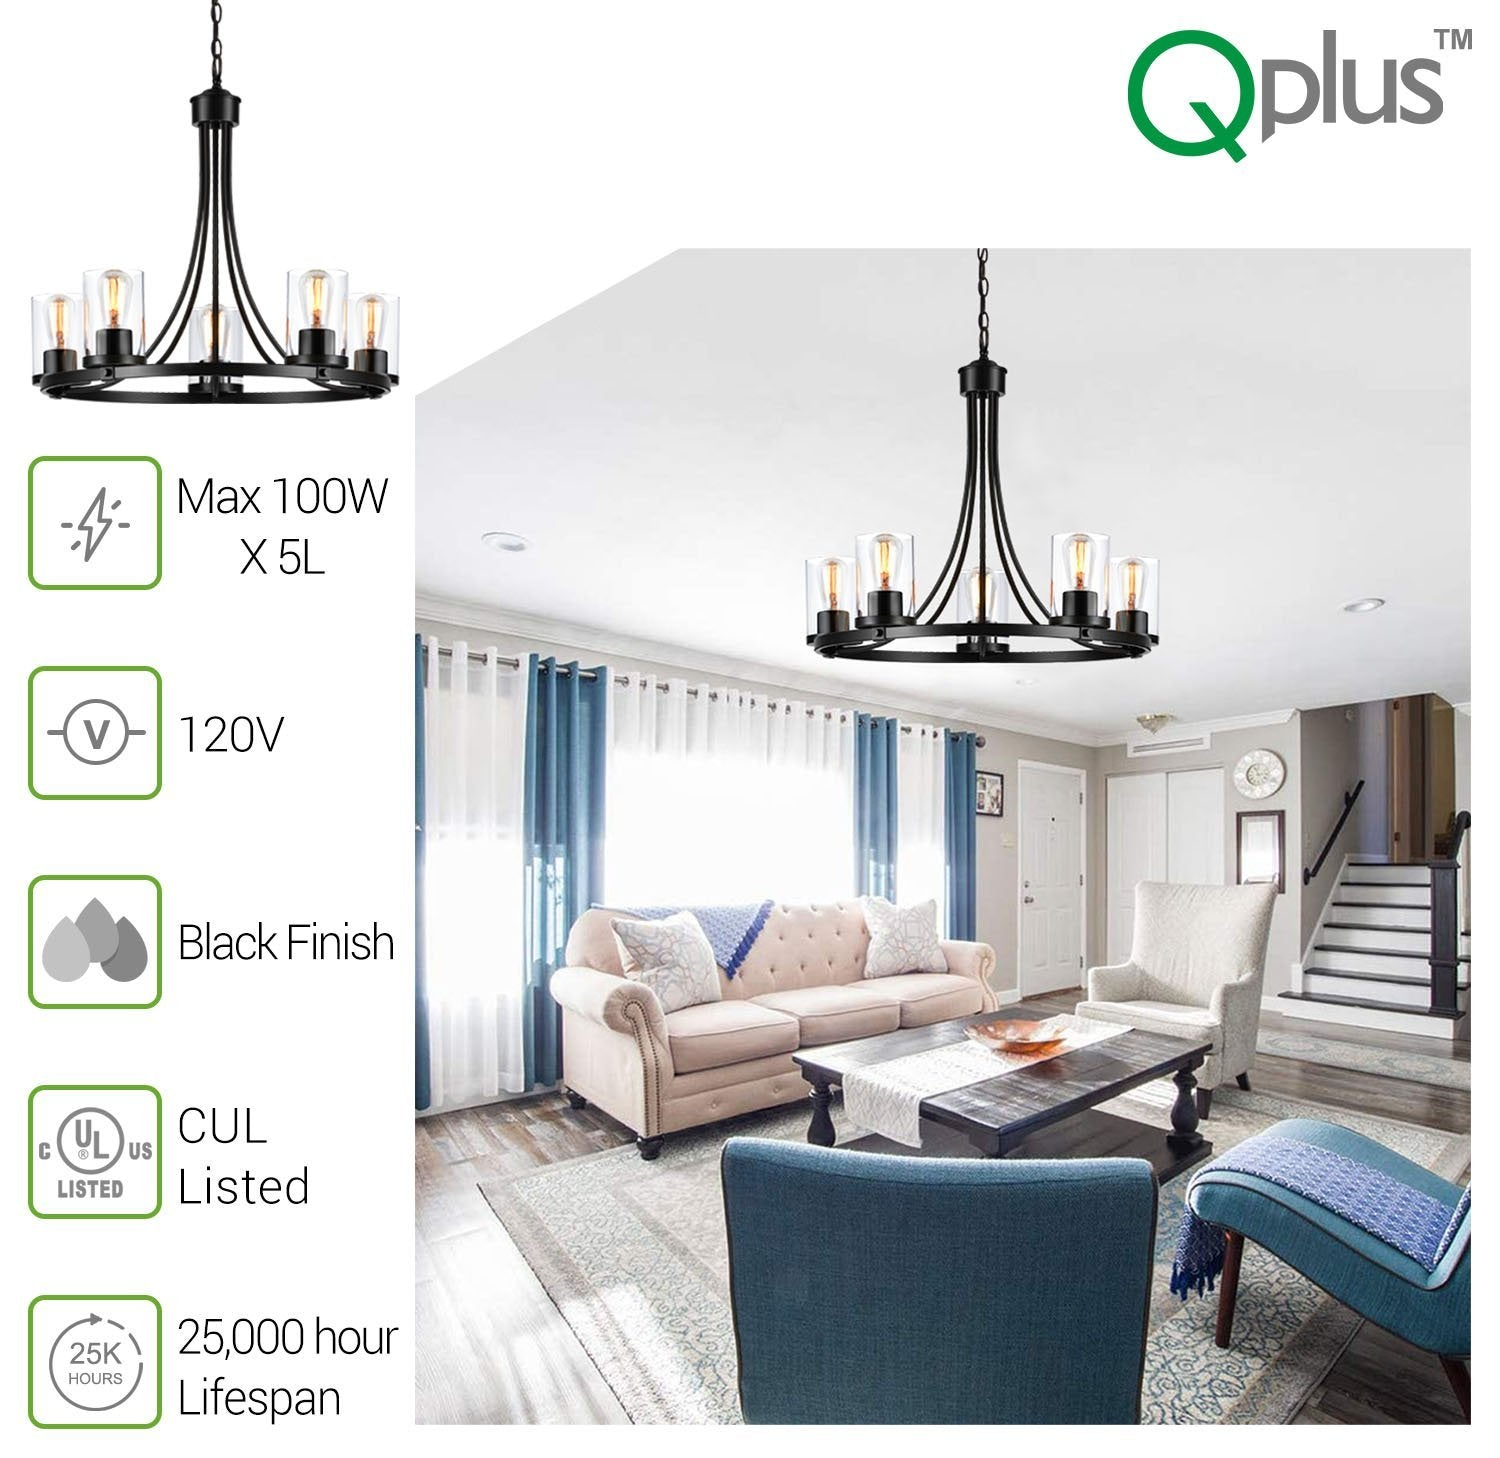 QPlus 5 Light Rustic Round Chandelier Pendant Lamp with E26 Bulb base & Clear Glass Shades - Black / Bronze - QPlus Home - Brighten Your Life